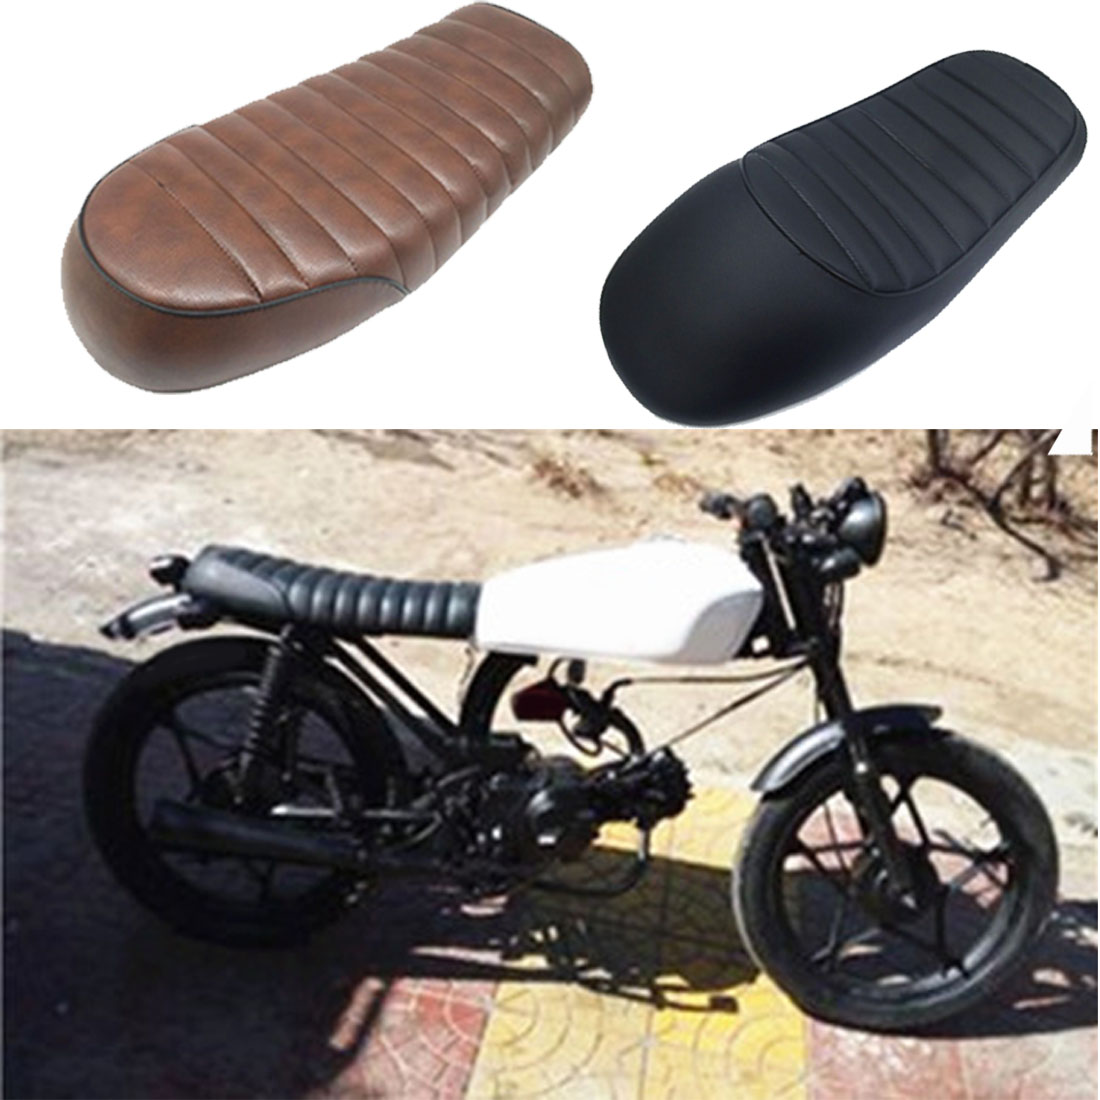 Dongzhen Motorcycle Seat Cover Cushion Fit For CG125 Outle Racer Retro Modified Universal Motorcycle Hump Vintage Custom